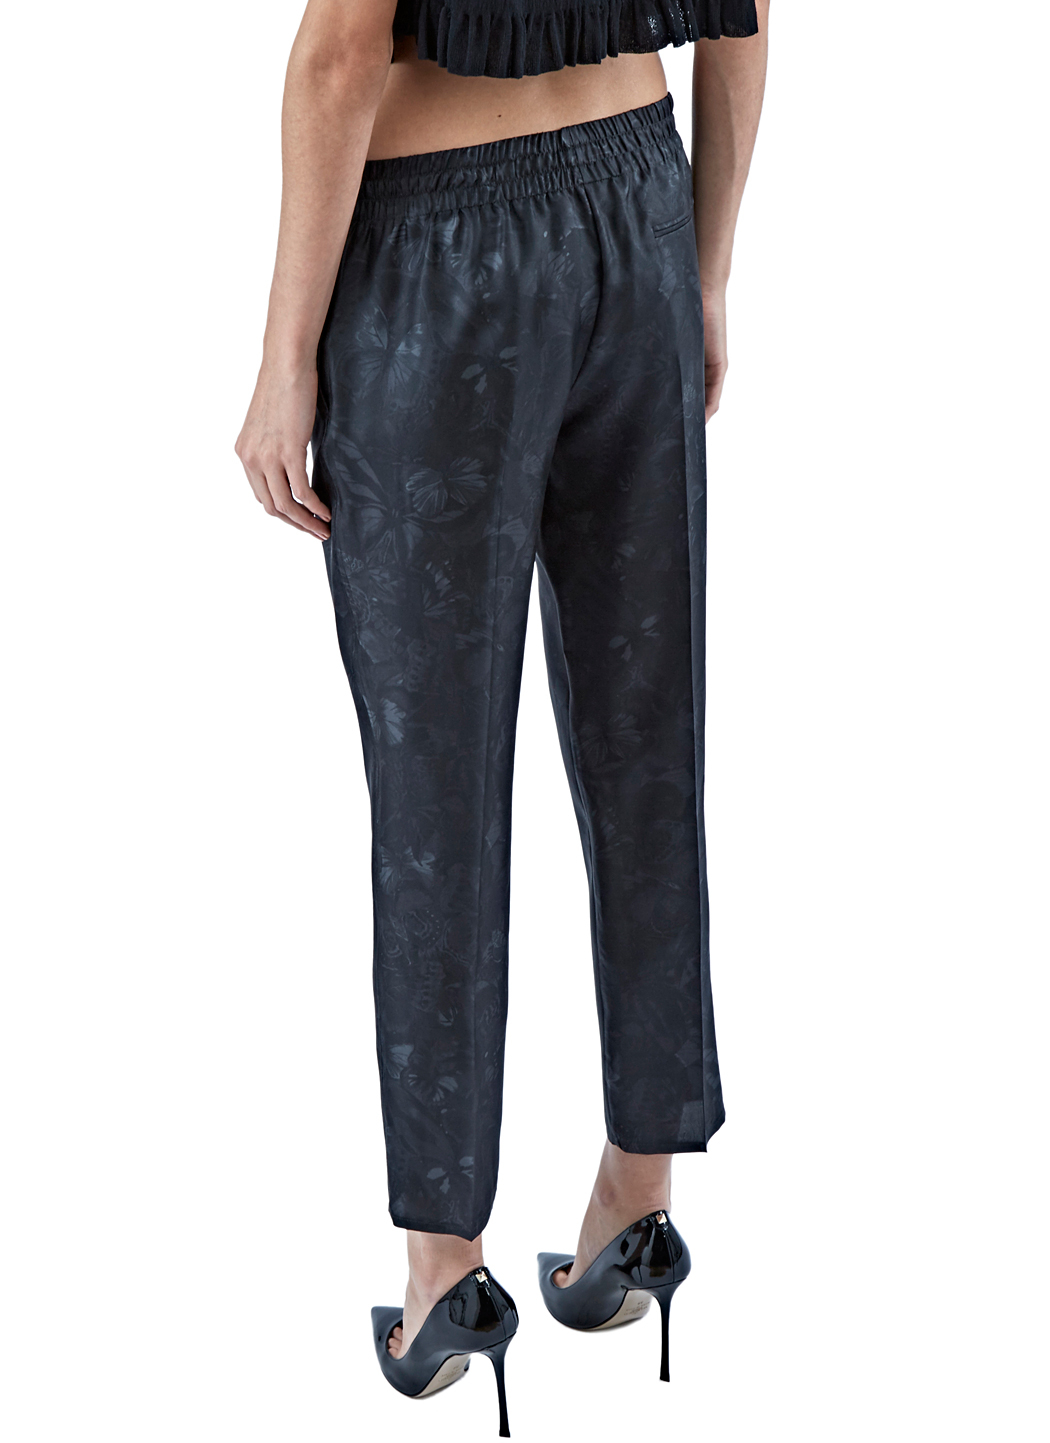 Valentino Women's Printed Silk Pants In Black in Black | Lyst